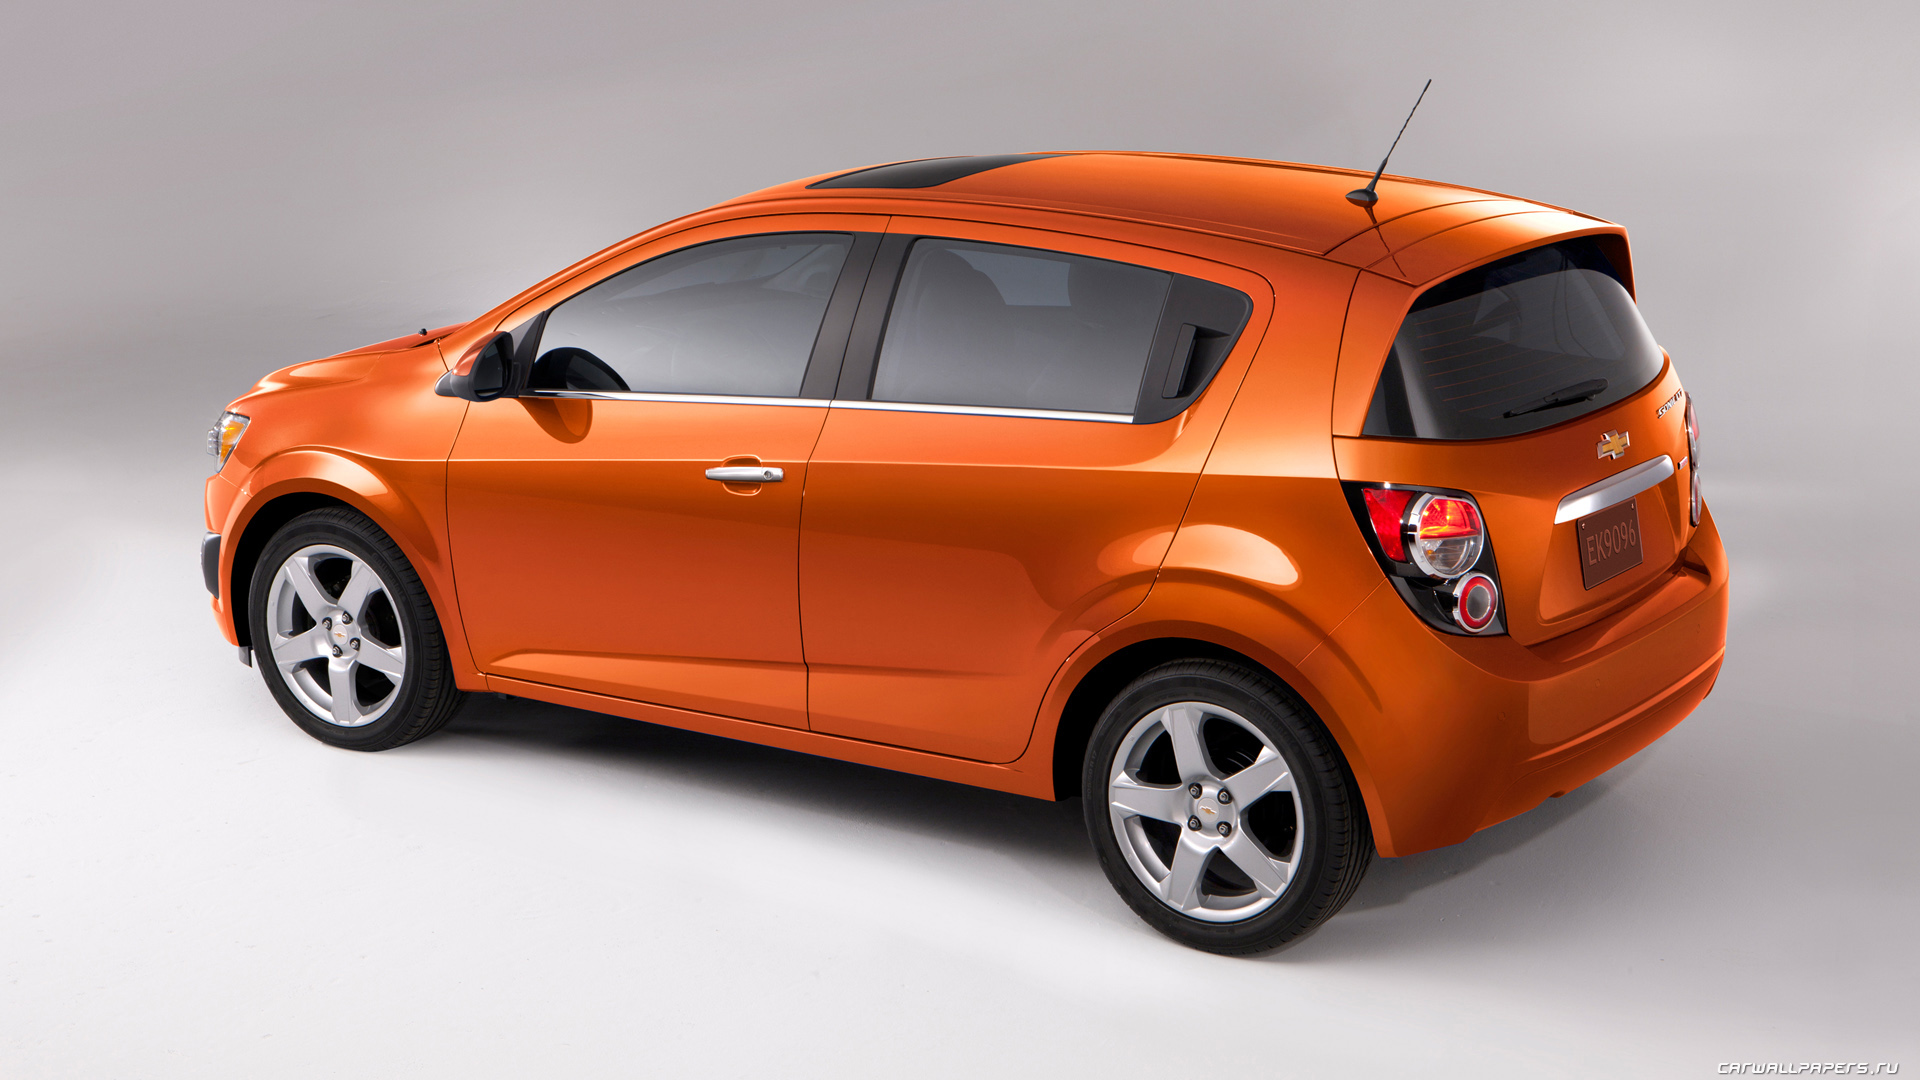 Chevy Rental  Rent a Chevrolet from Sixt rent a car